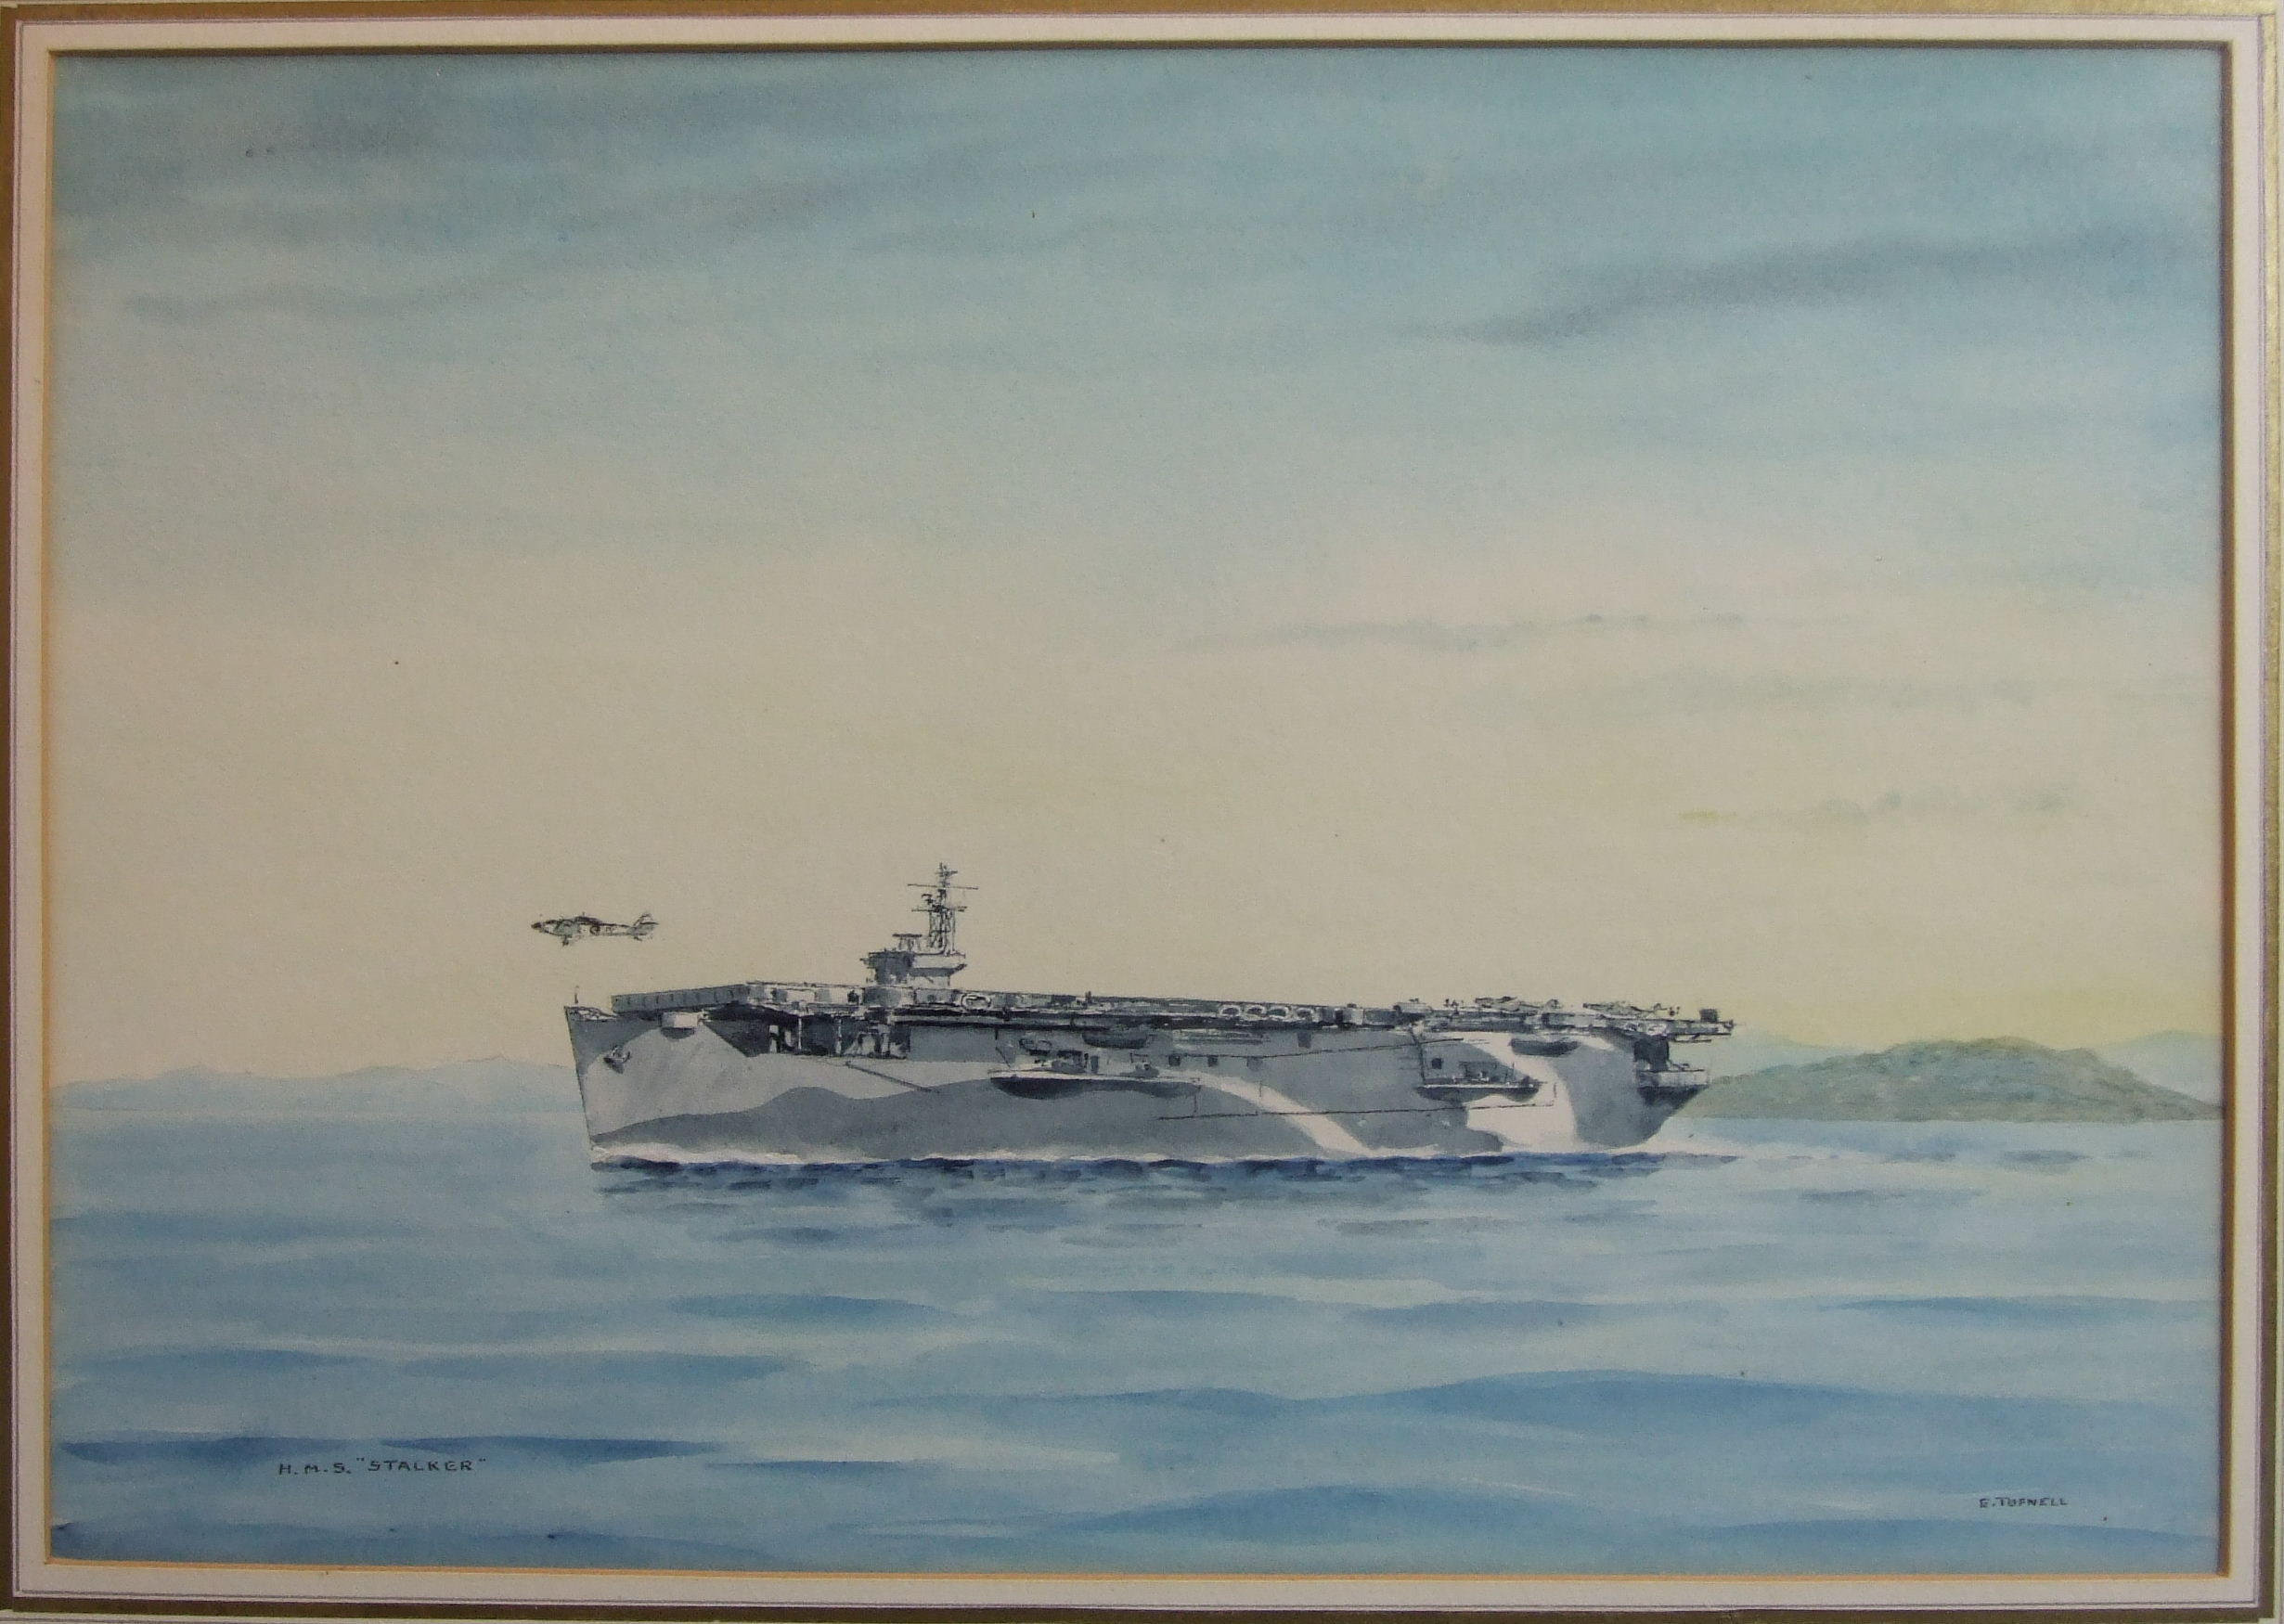 •Eric Erskine Campbell Tufnell (1888-1978) HMS STALKER D91 ESCORT AIRCRAFT CARRIER Signed and titled